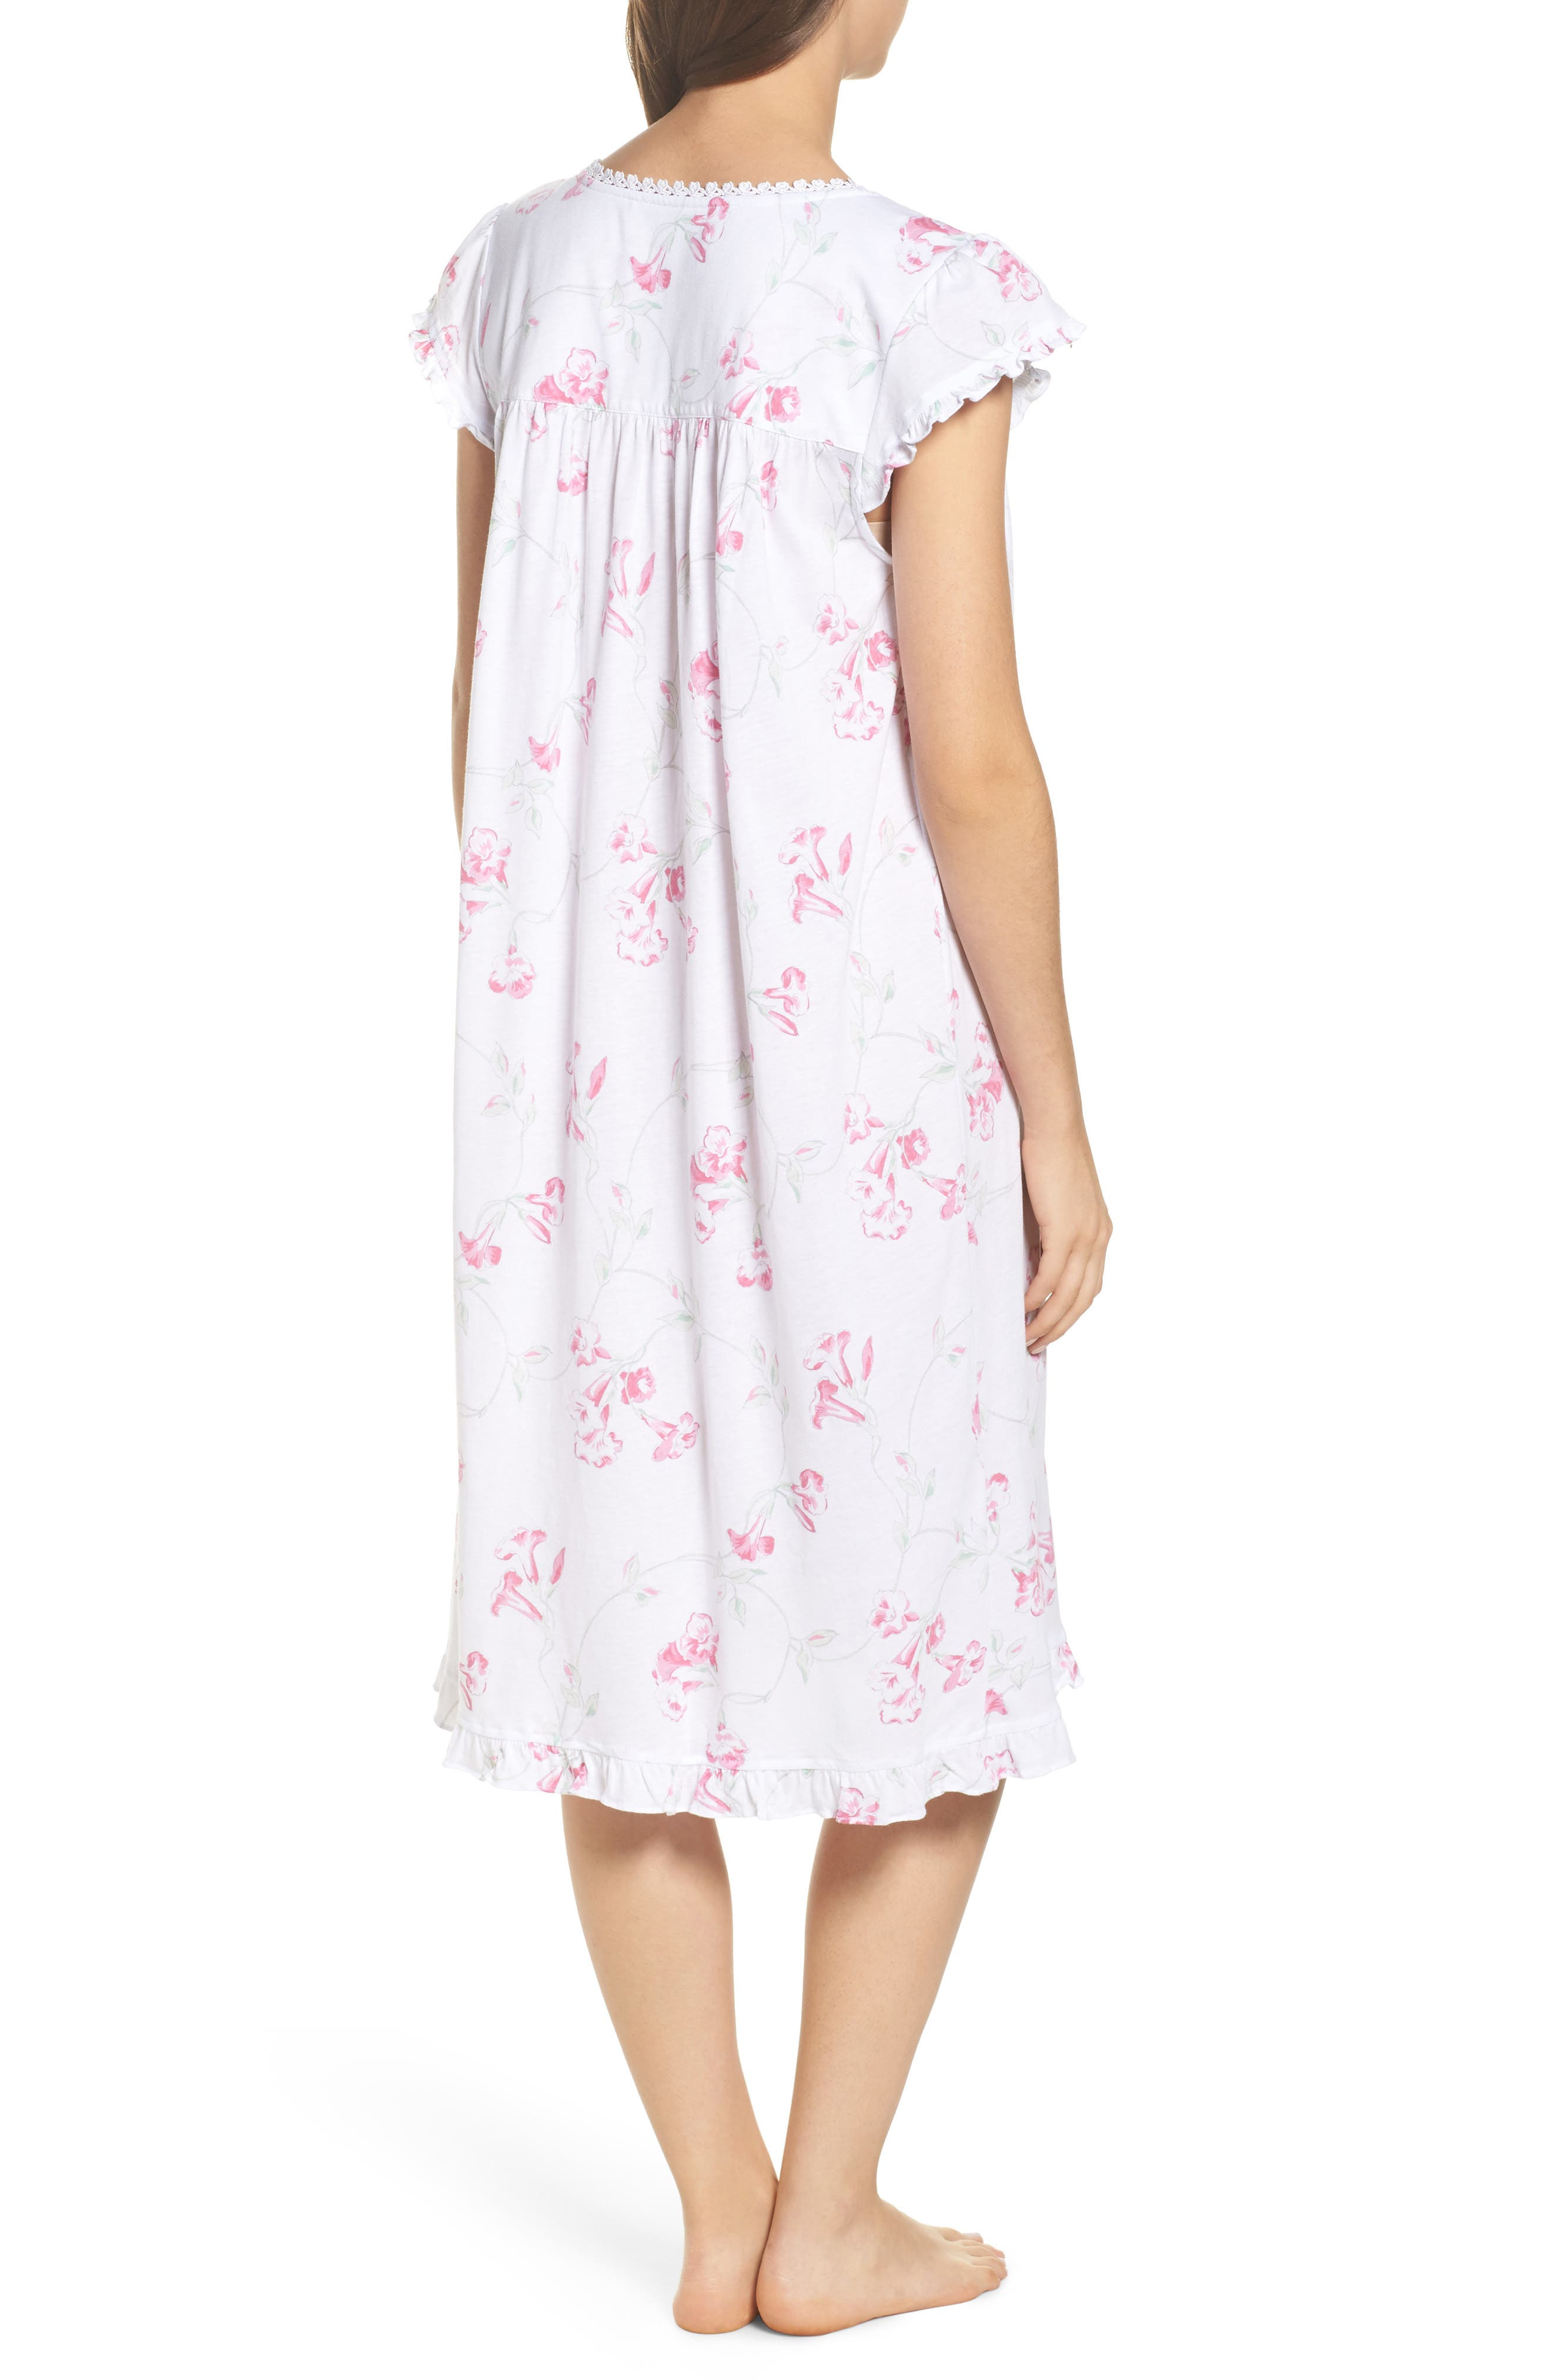 Floral Print Nightgown,                             Alternate thumbnail 2, color,